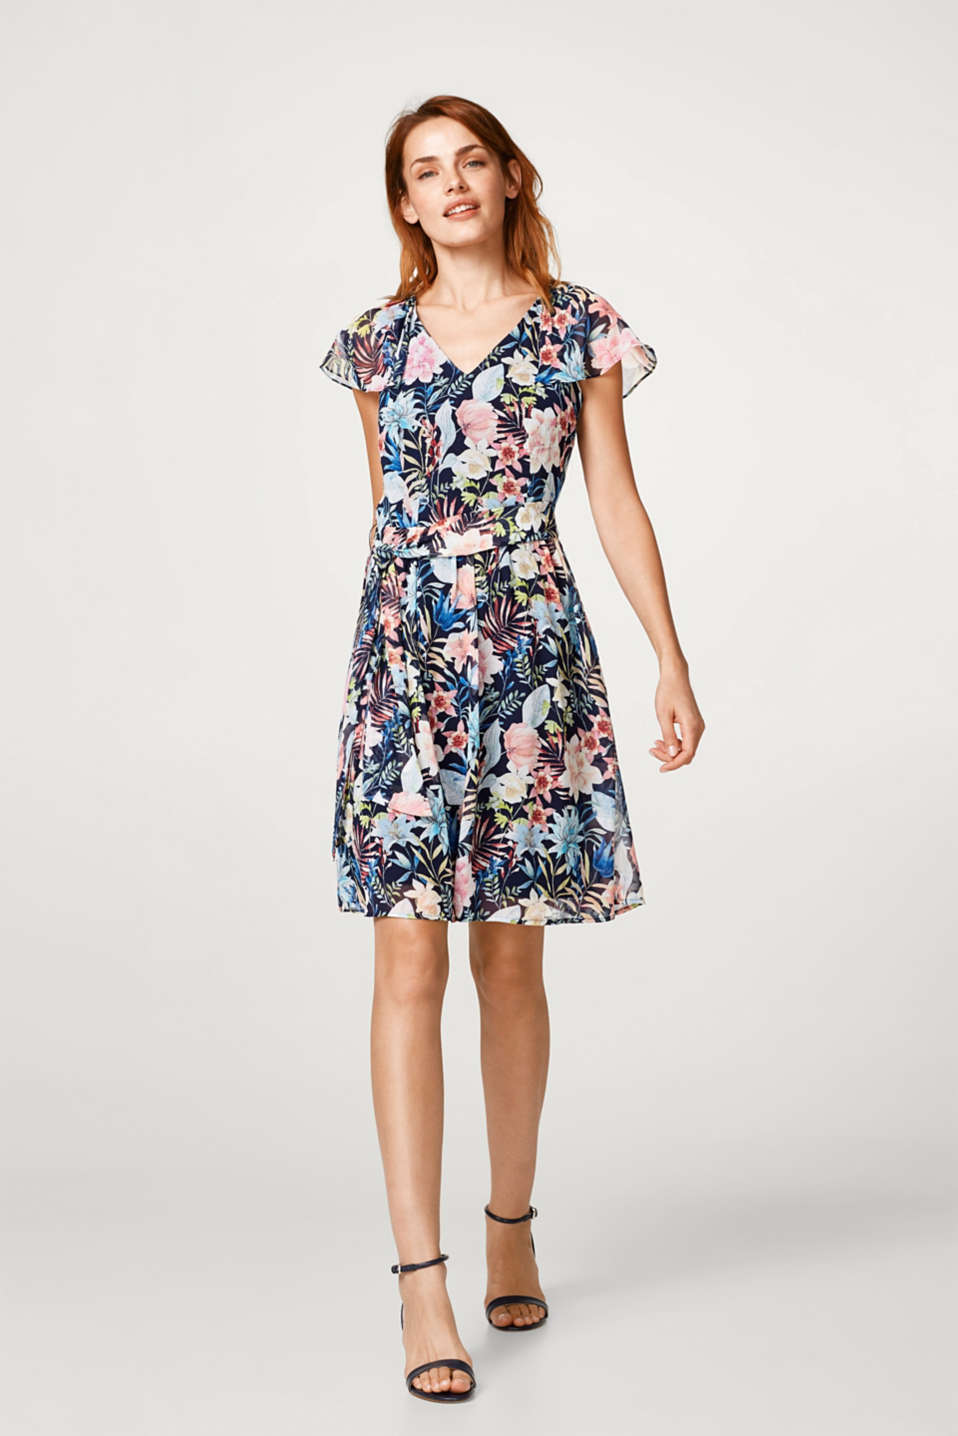 Chiffon dress with a floral print and cap sleeves